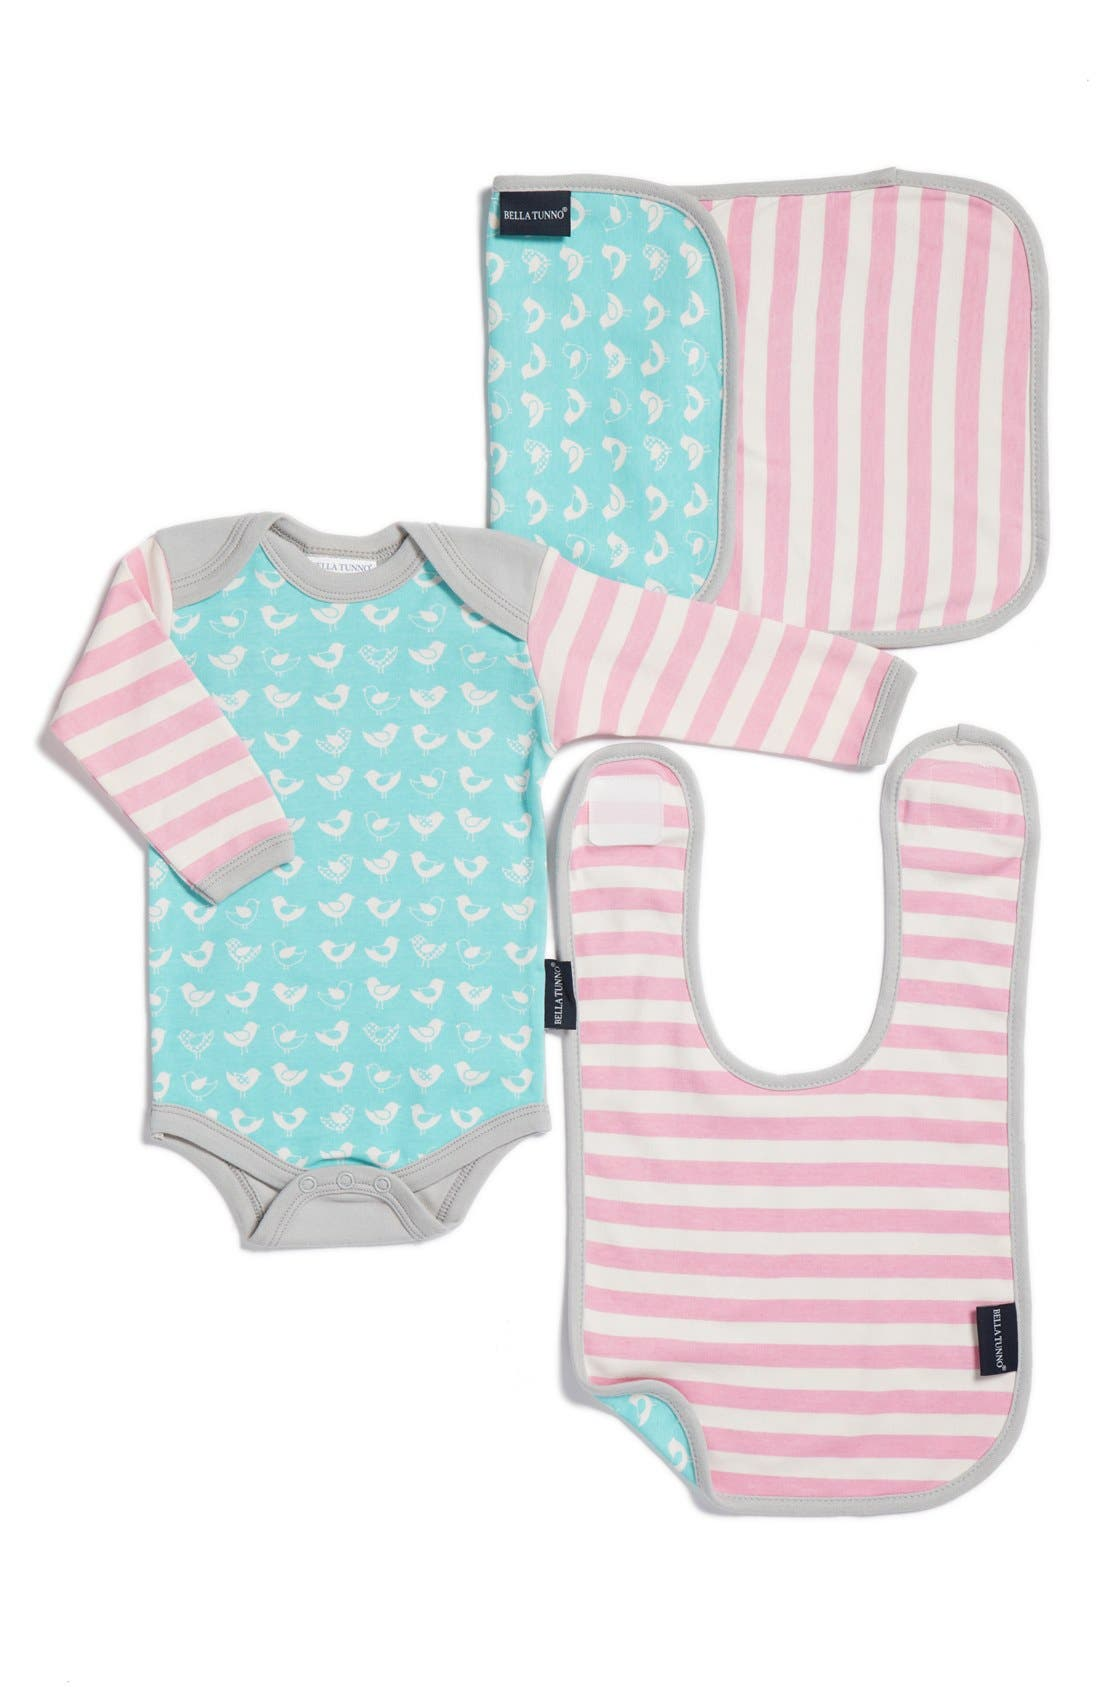 Bella Tunno Bodysuit, Bib & Burpie Cloth Set (Baby Girls)